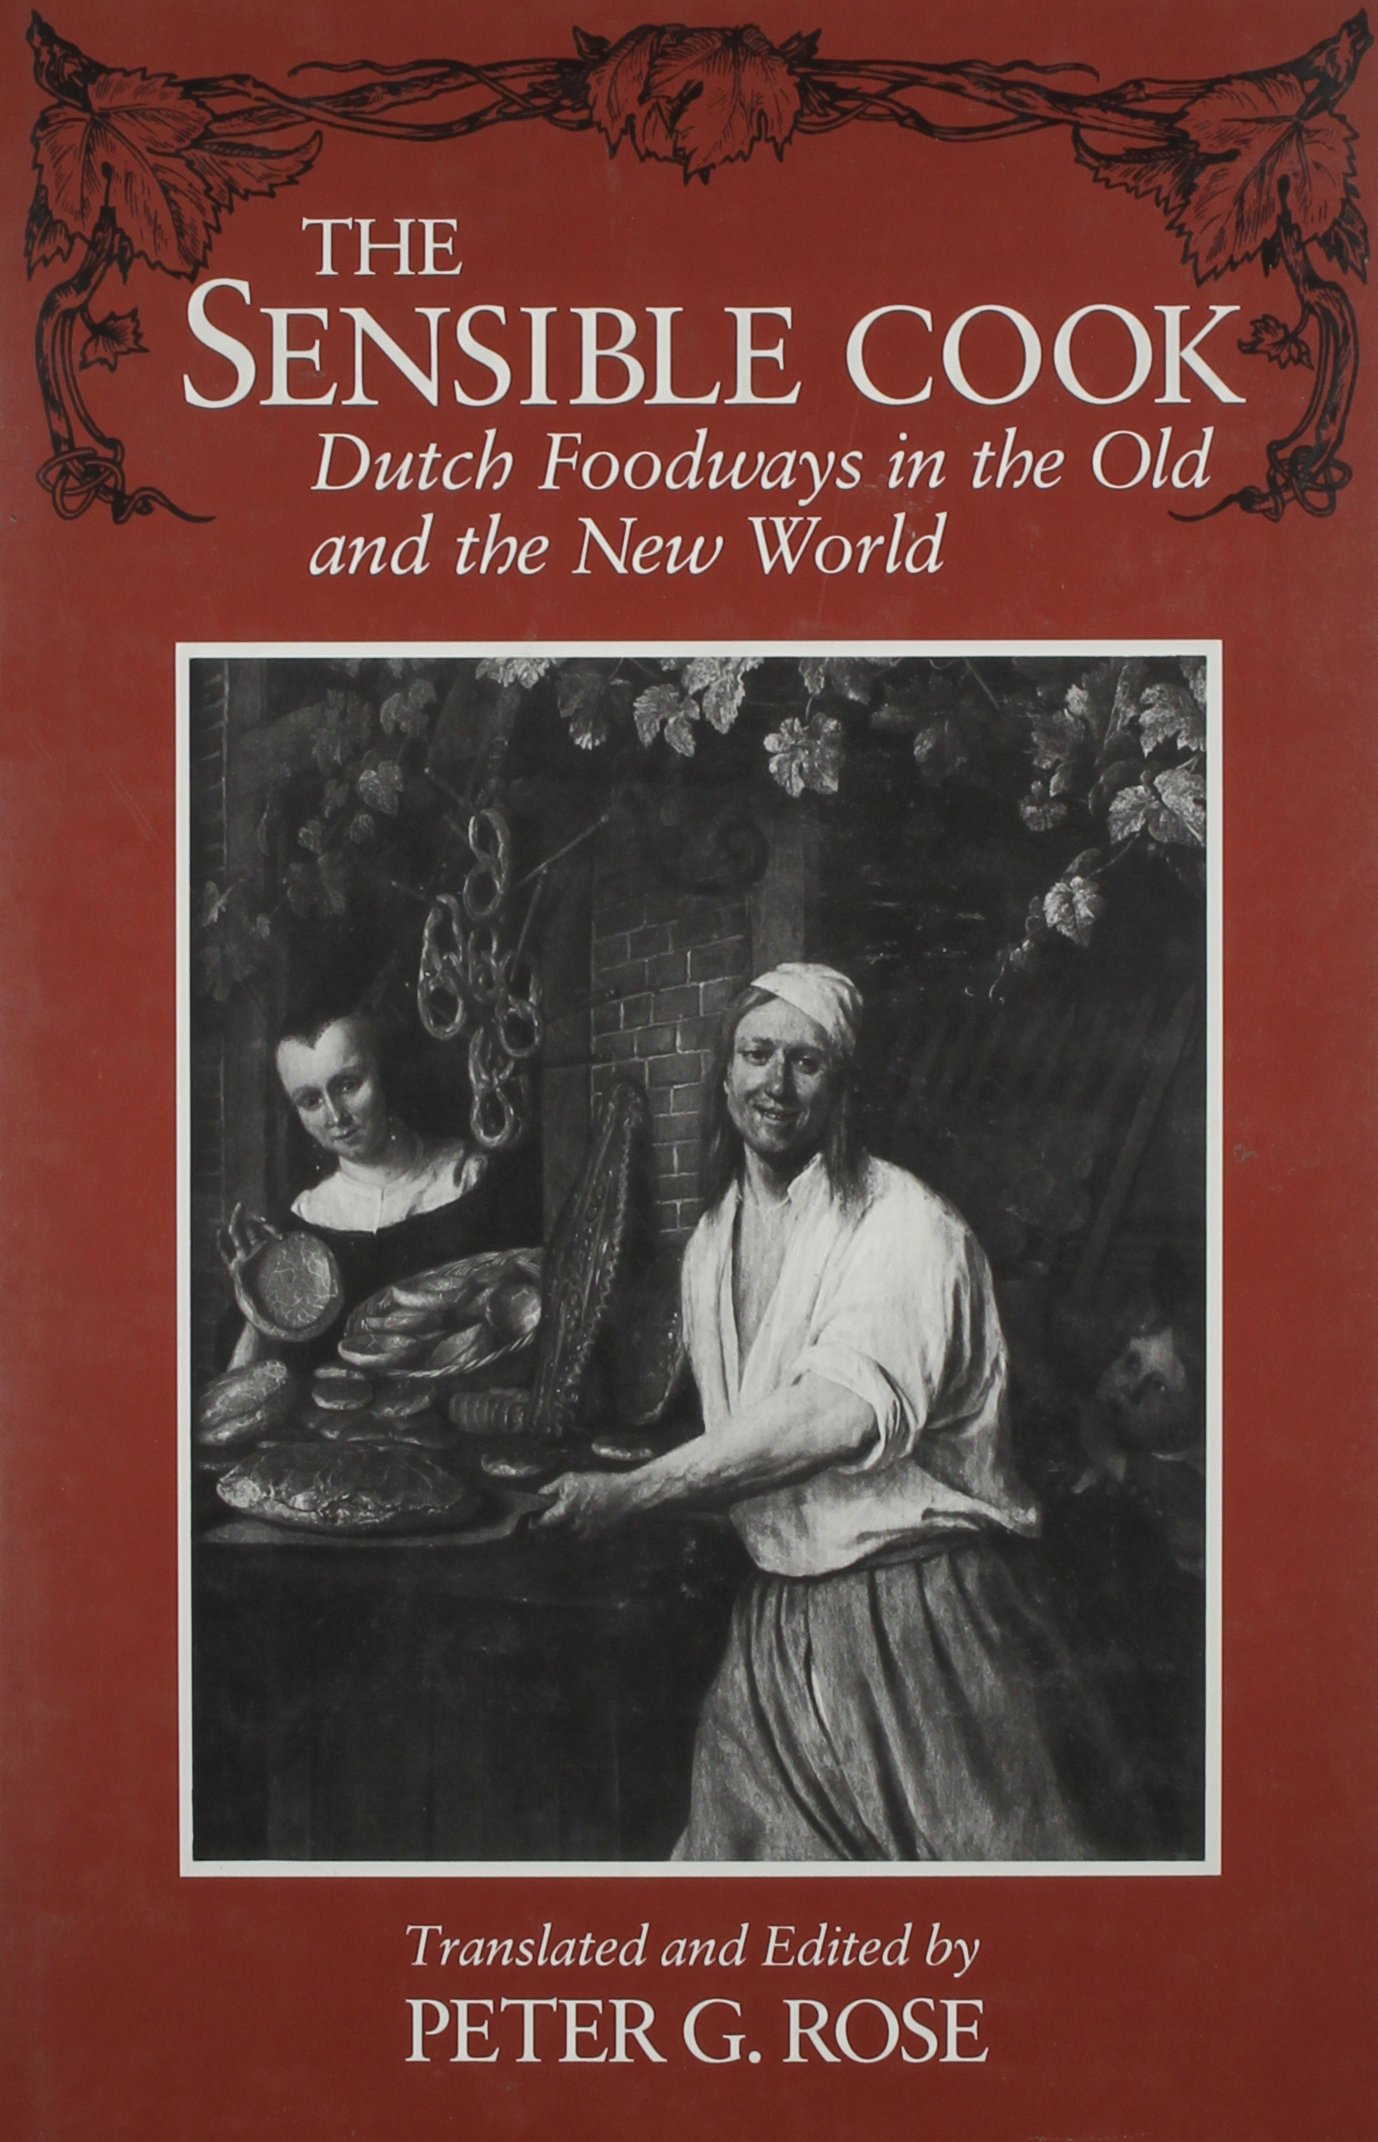 Sensible Cook: Dutch Foodways in the Old and New World (New York State Series)